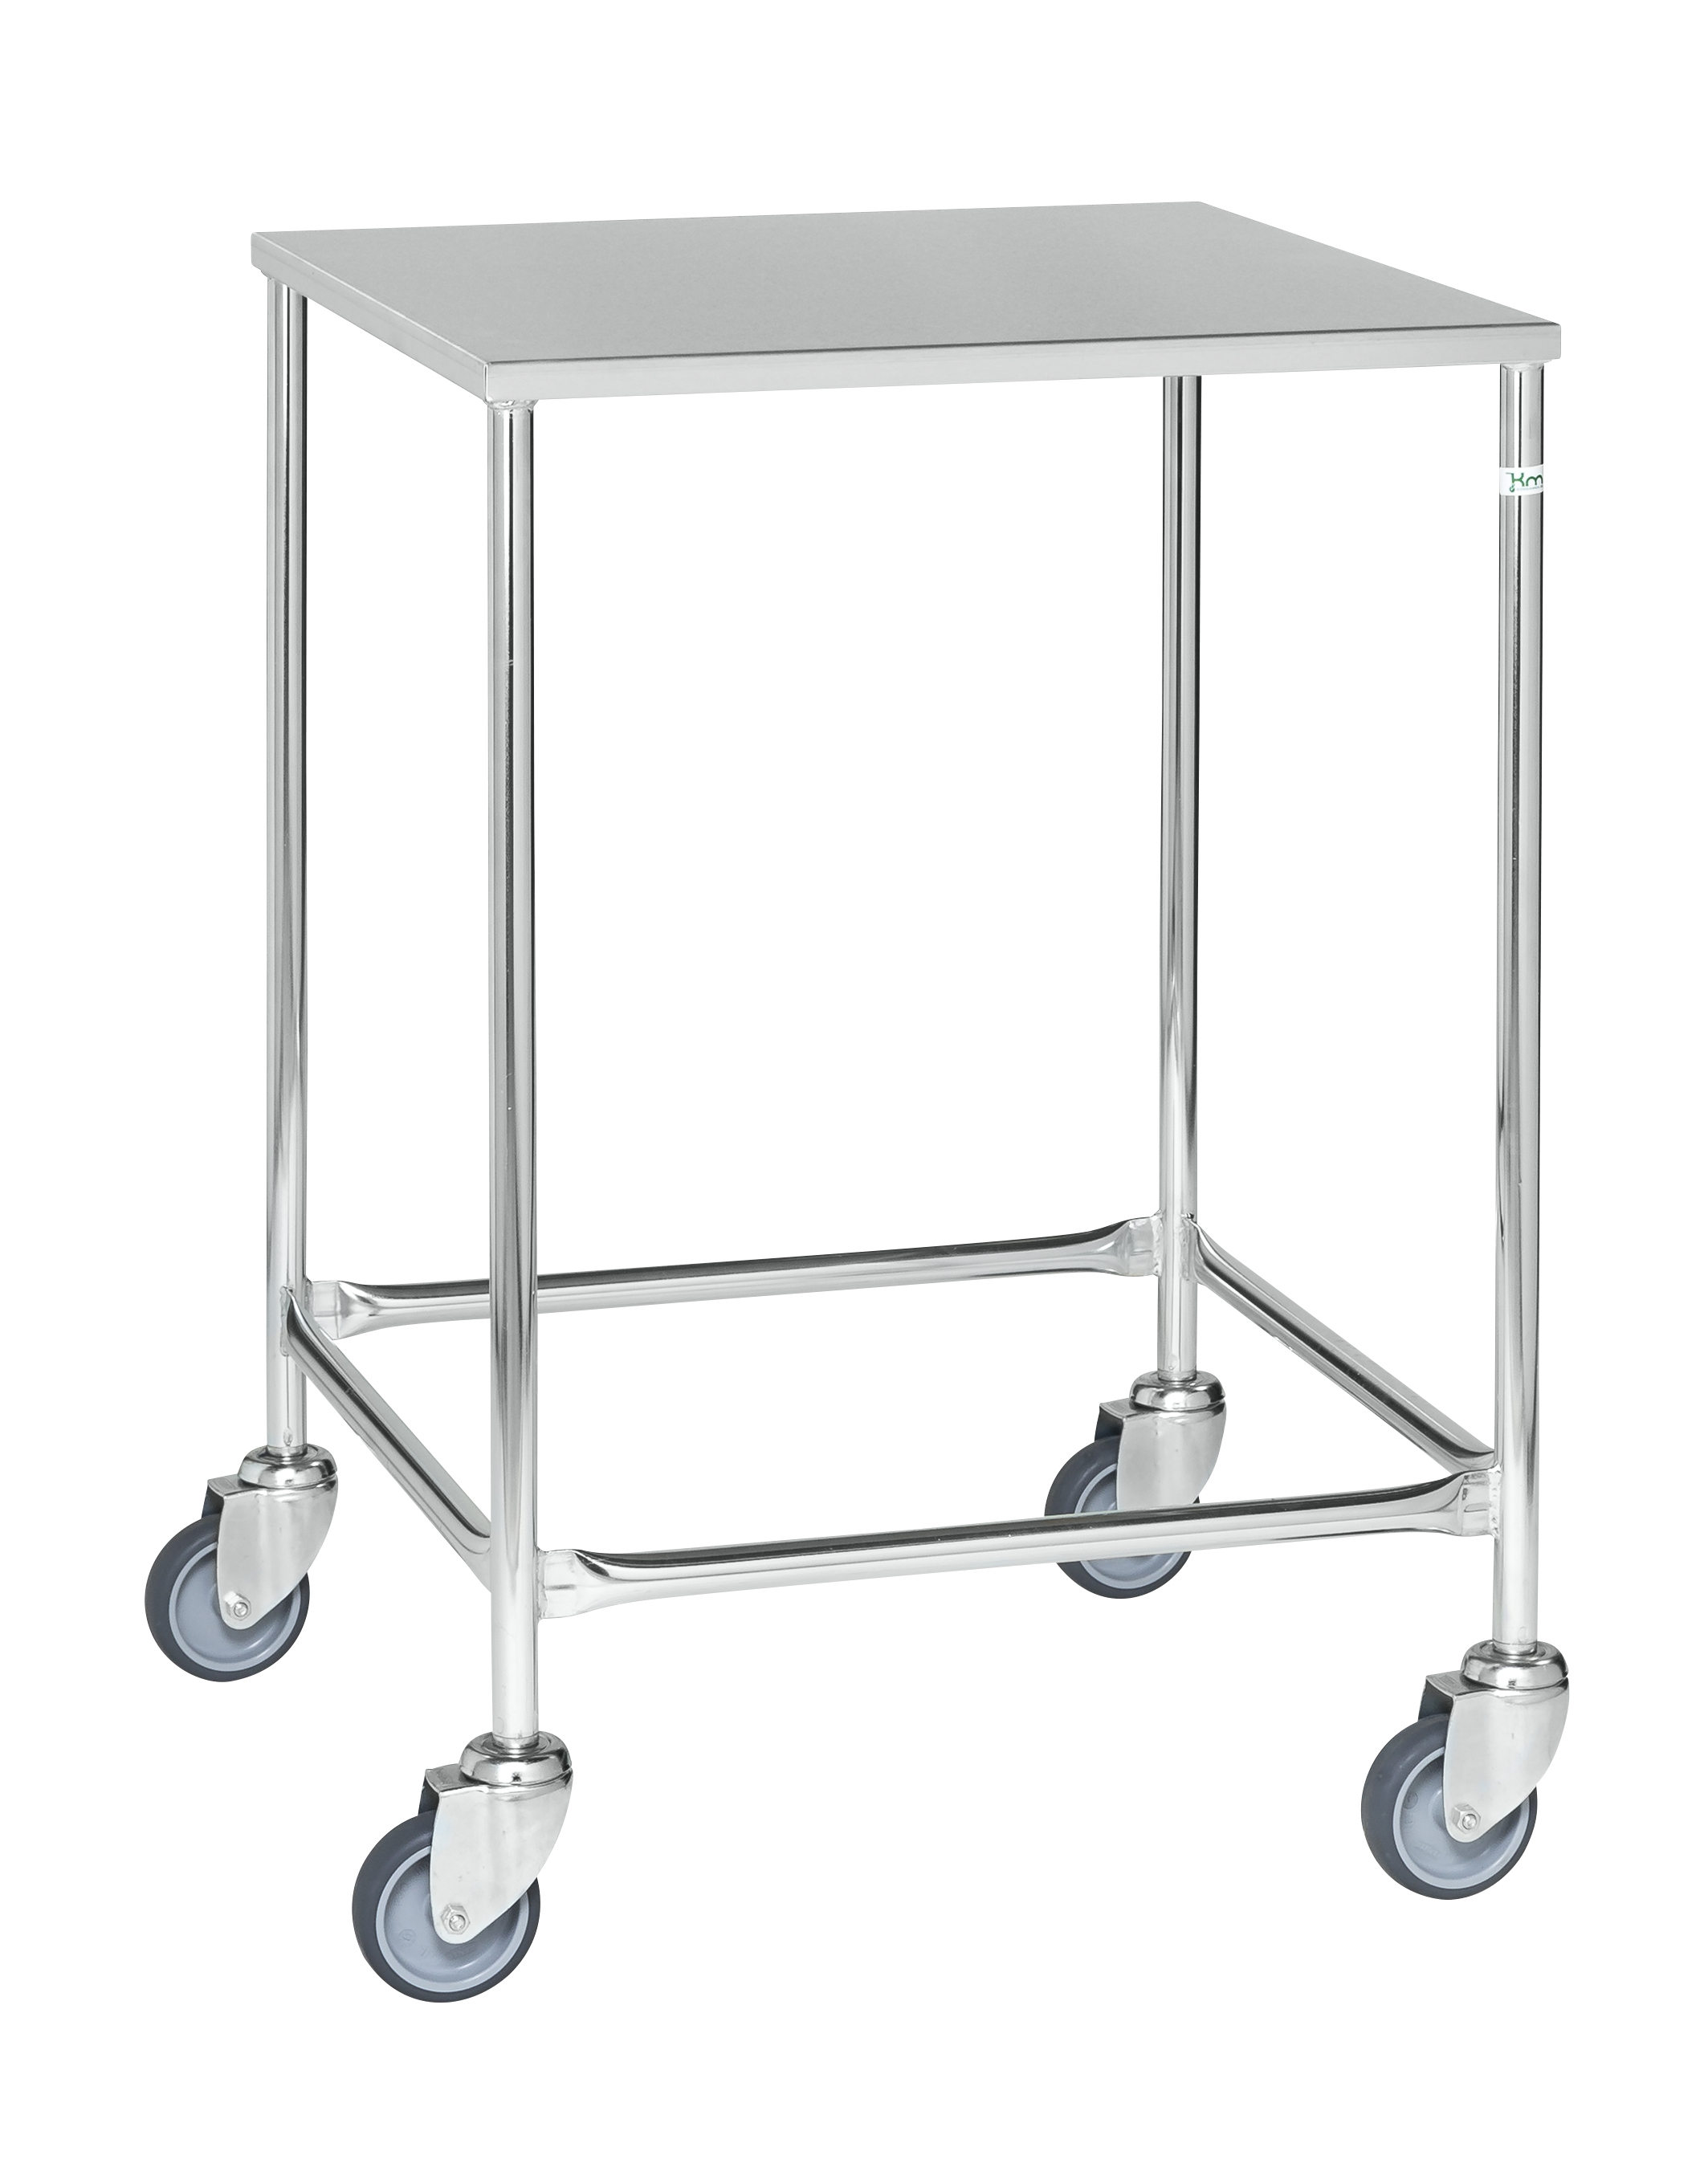 KM270 | Roll table